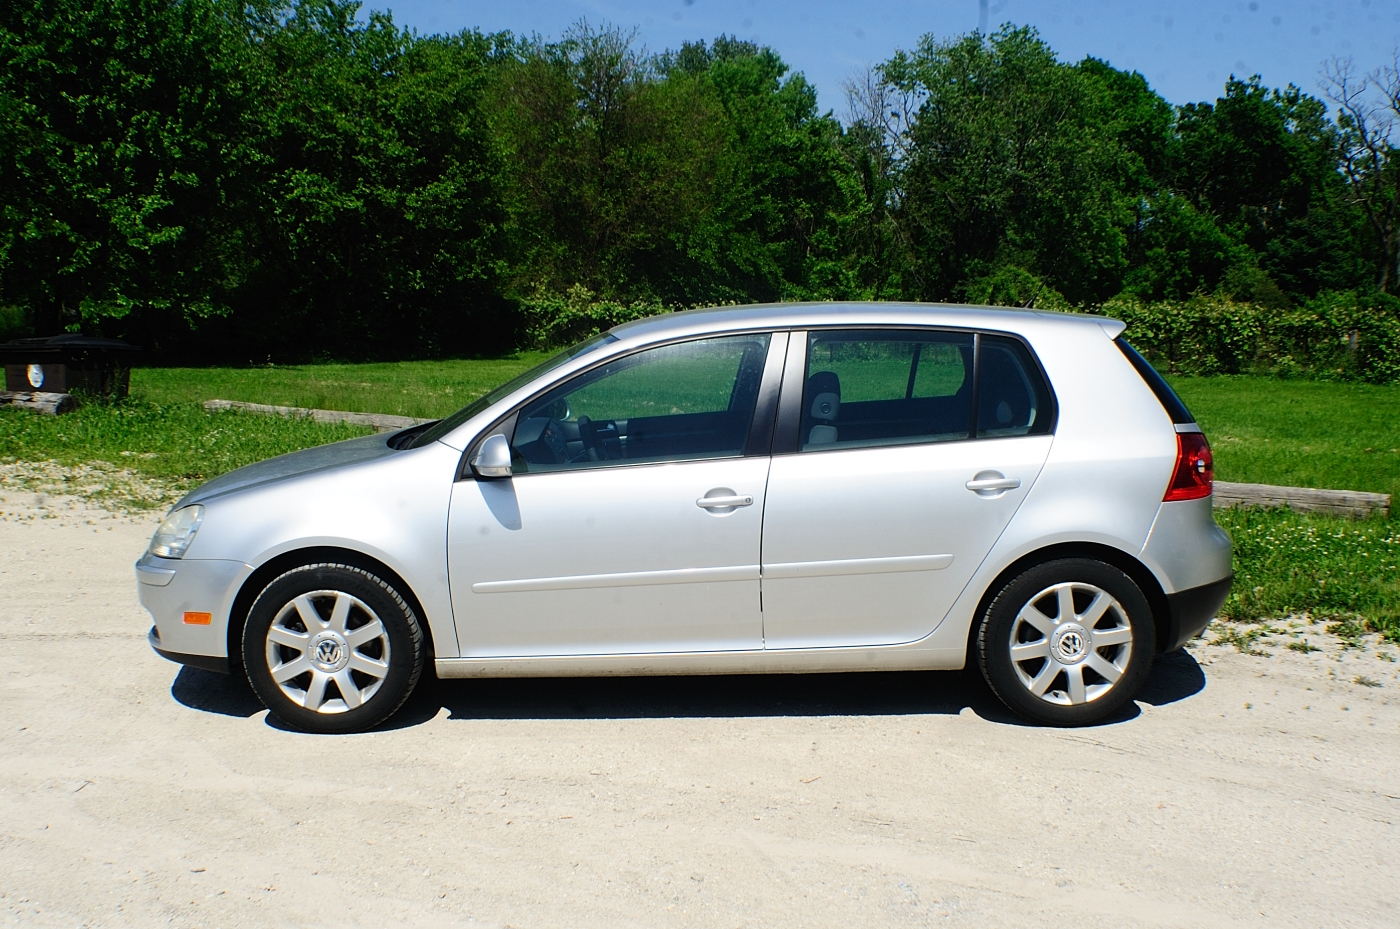 2006 Volkswagen Rabbit Silver Manual Hatchback Sale Antioch Zion Waukegan Lake County Illinois